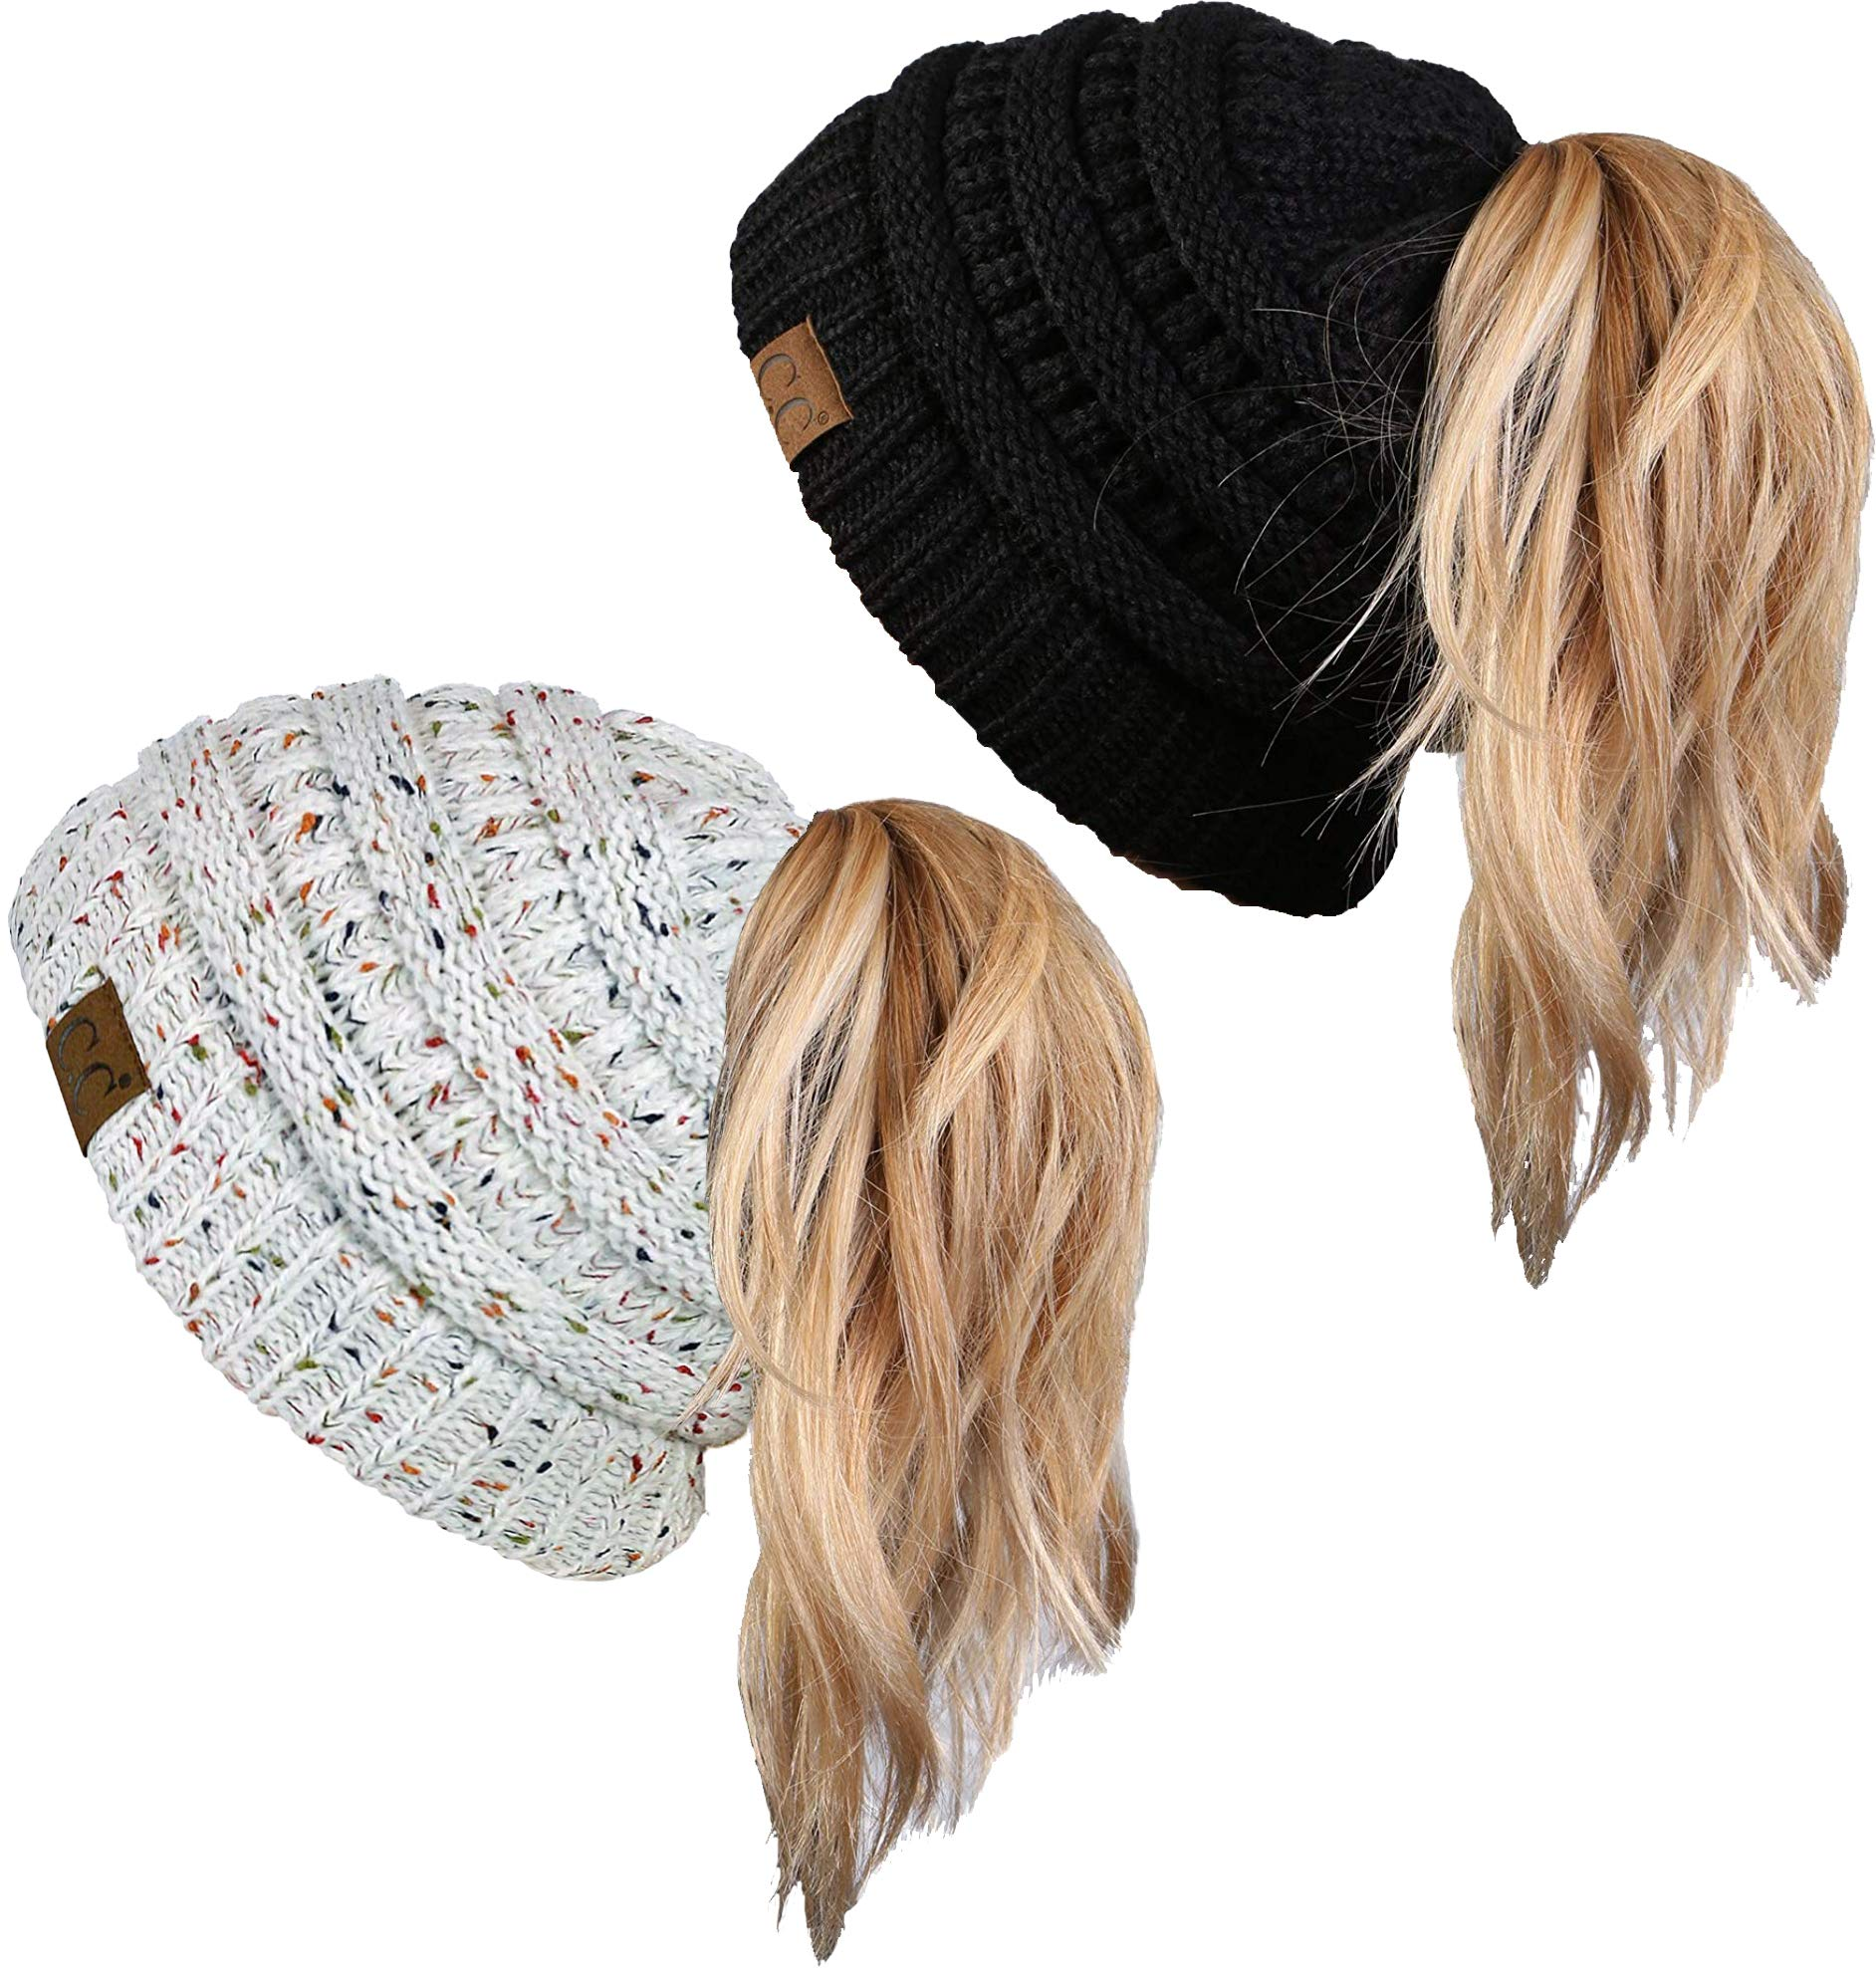 BT-6020a-2-06-3325 Messy Bun Beanie Tail Bundle - Black & Confetti Ivory (2 Pack)